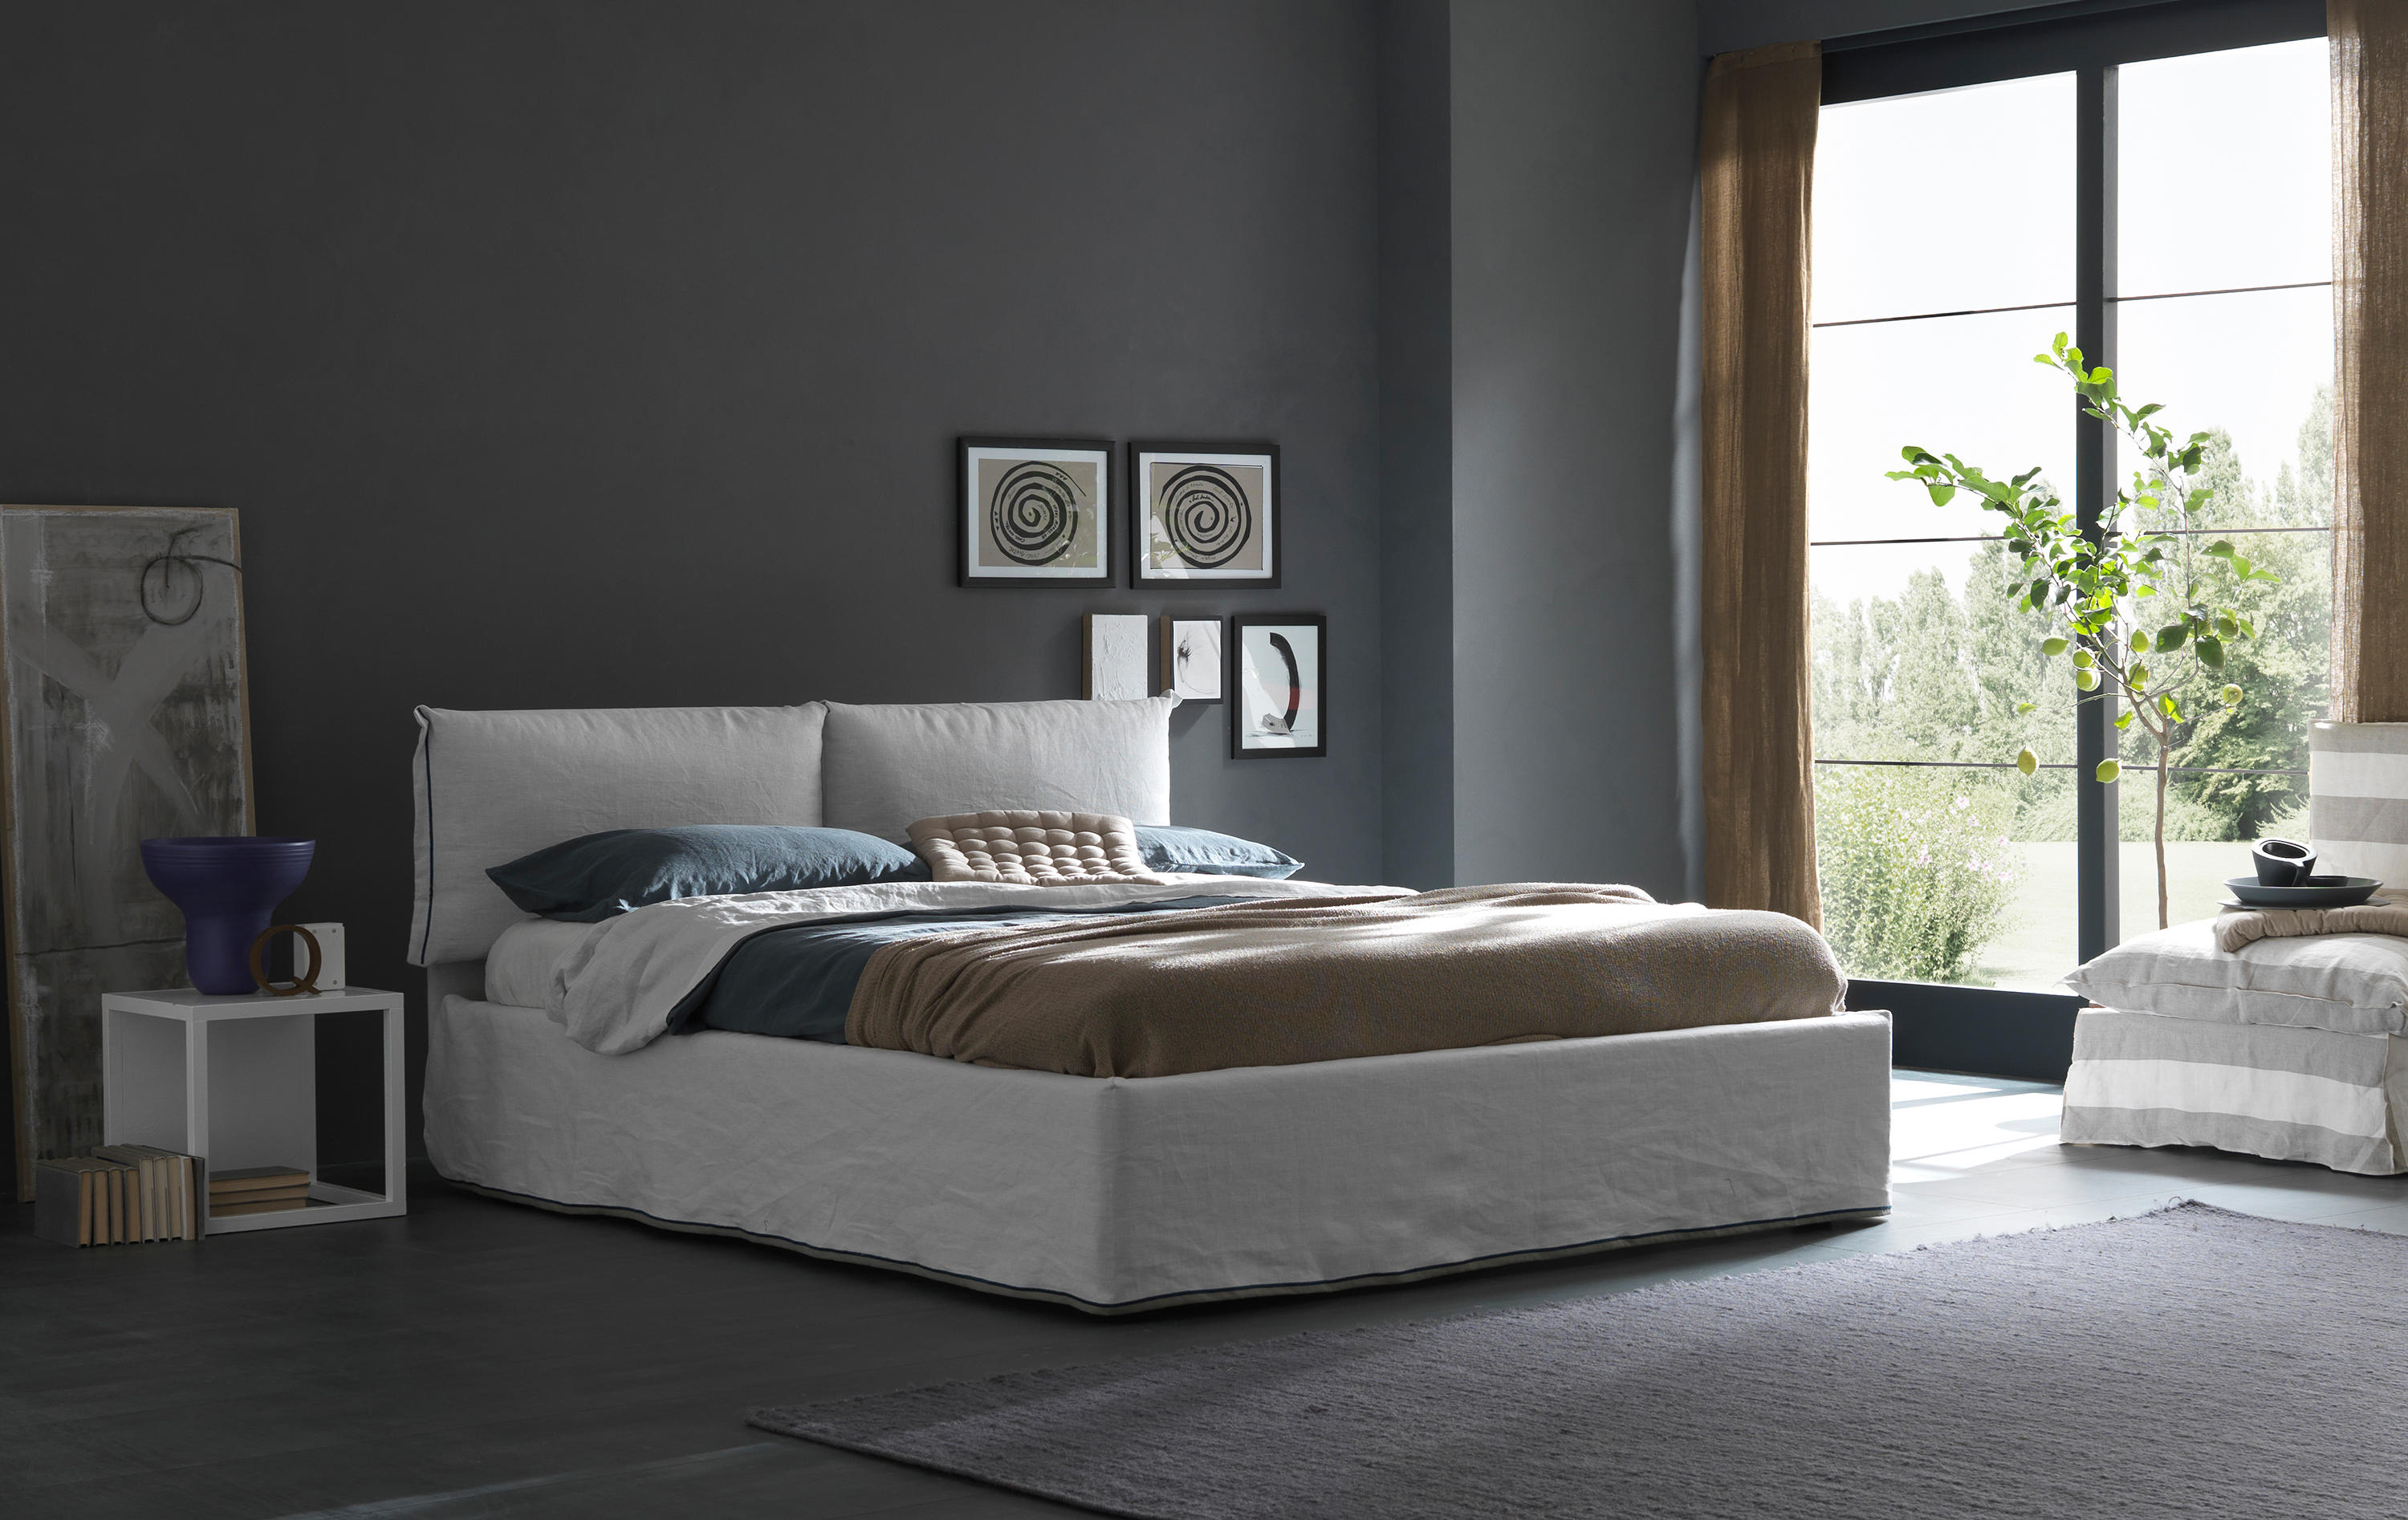 iorca chic double beds from bolzan letti architonic